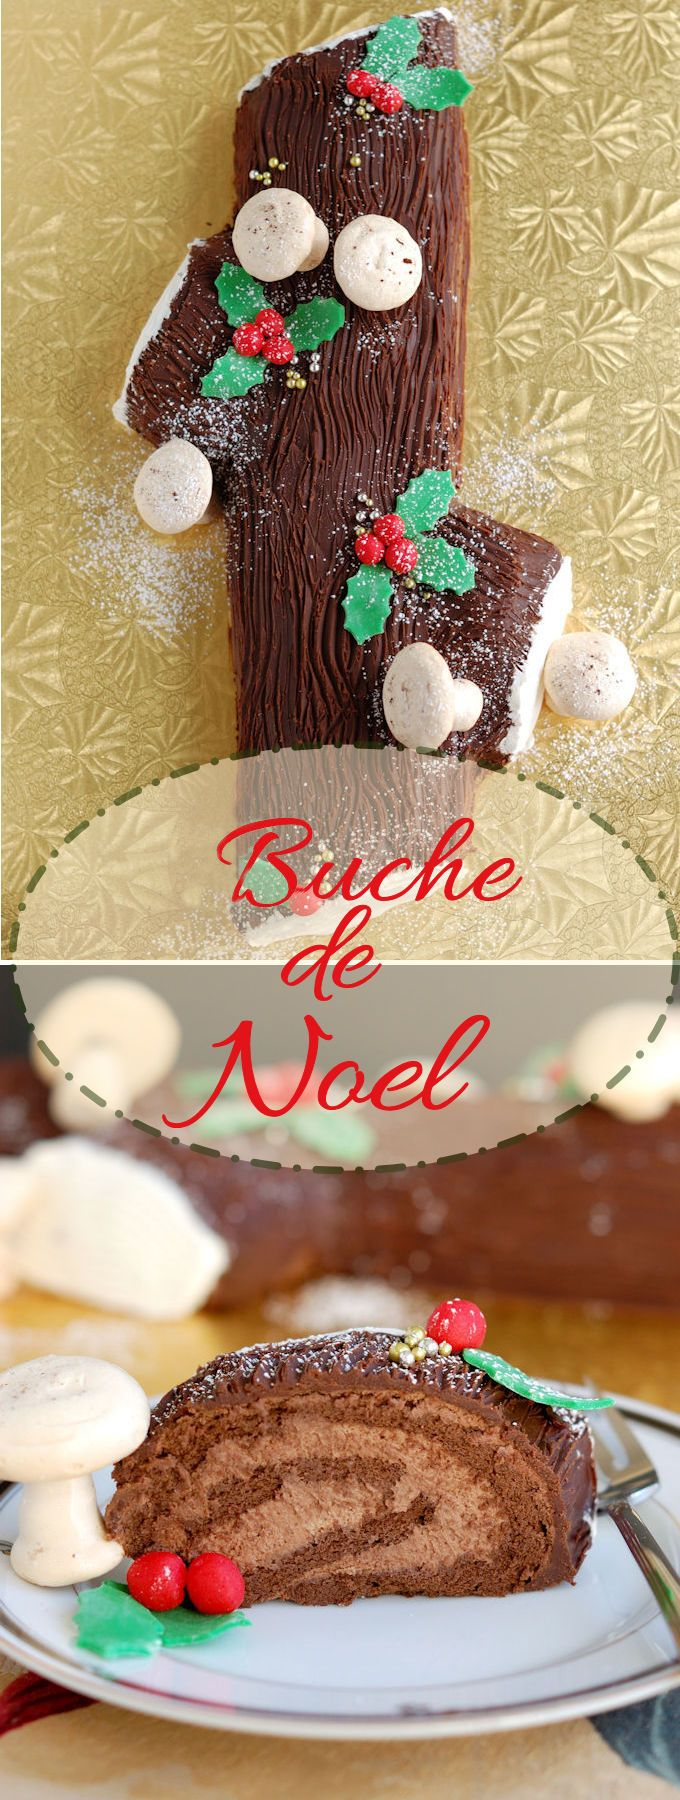 How to make a christmas yule log decoration - Buche De Noel Yule Log Cake